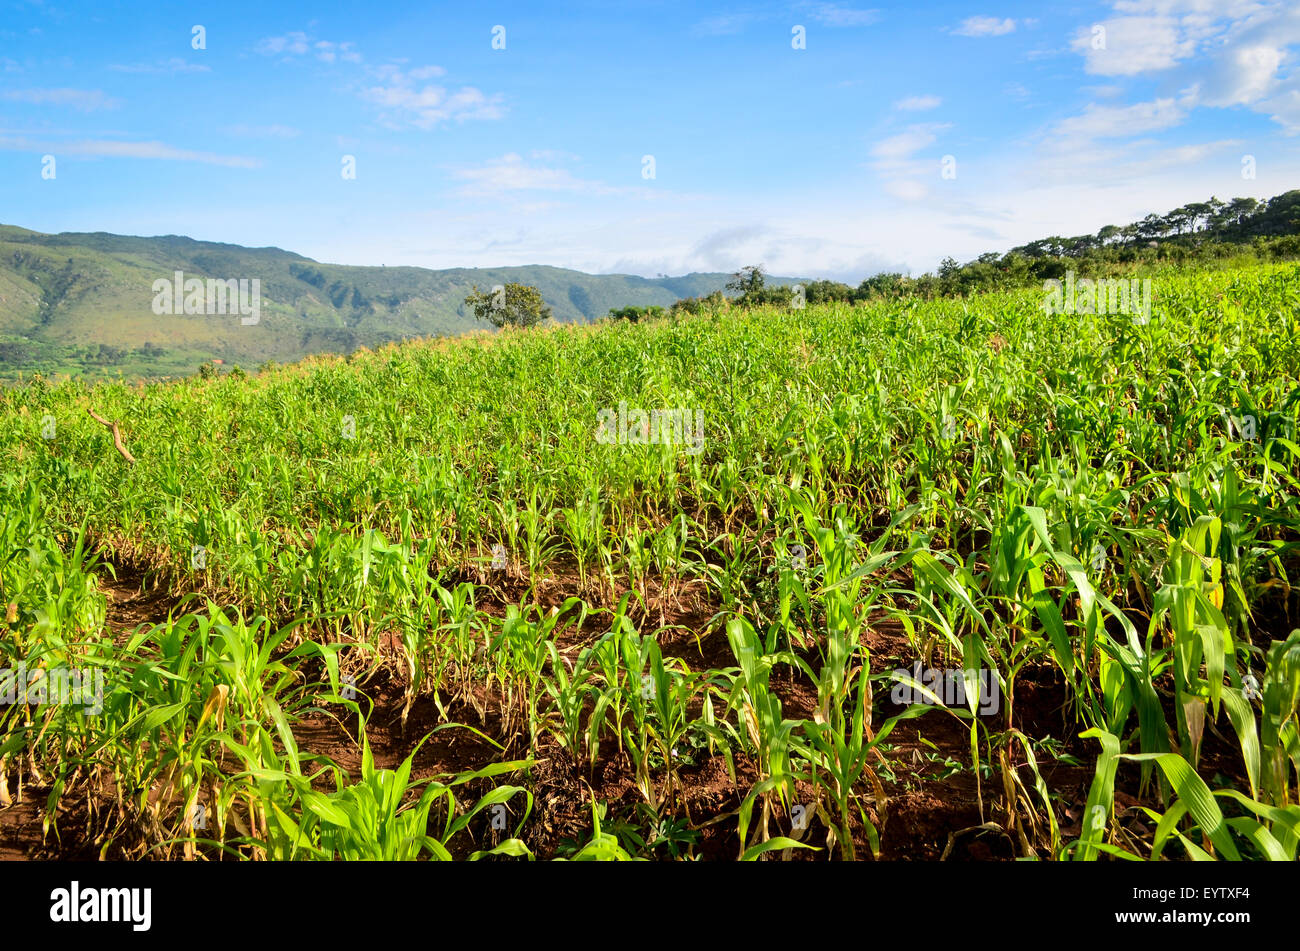 Crops of maize growing in Angola - Stock Image